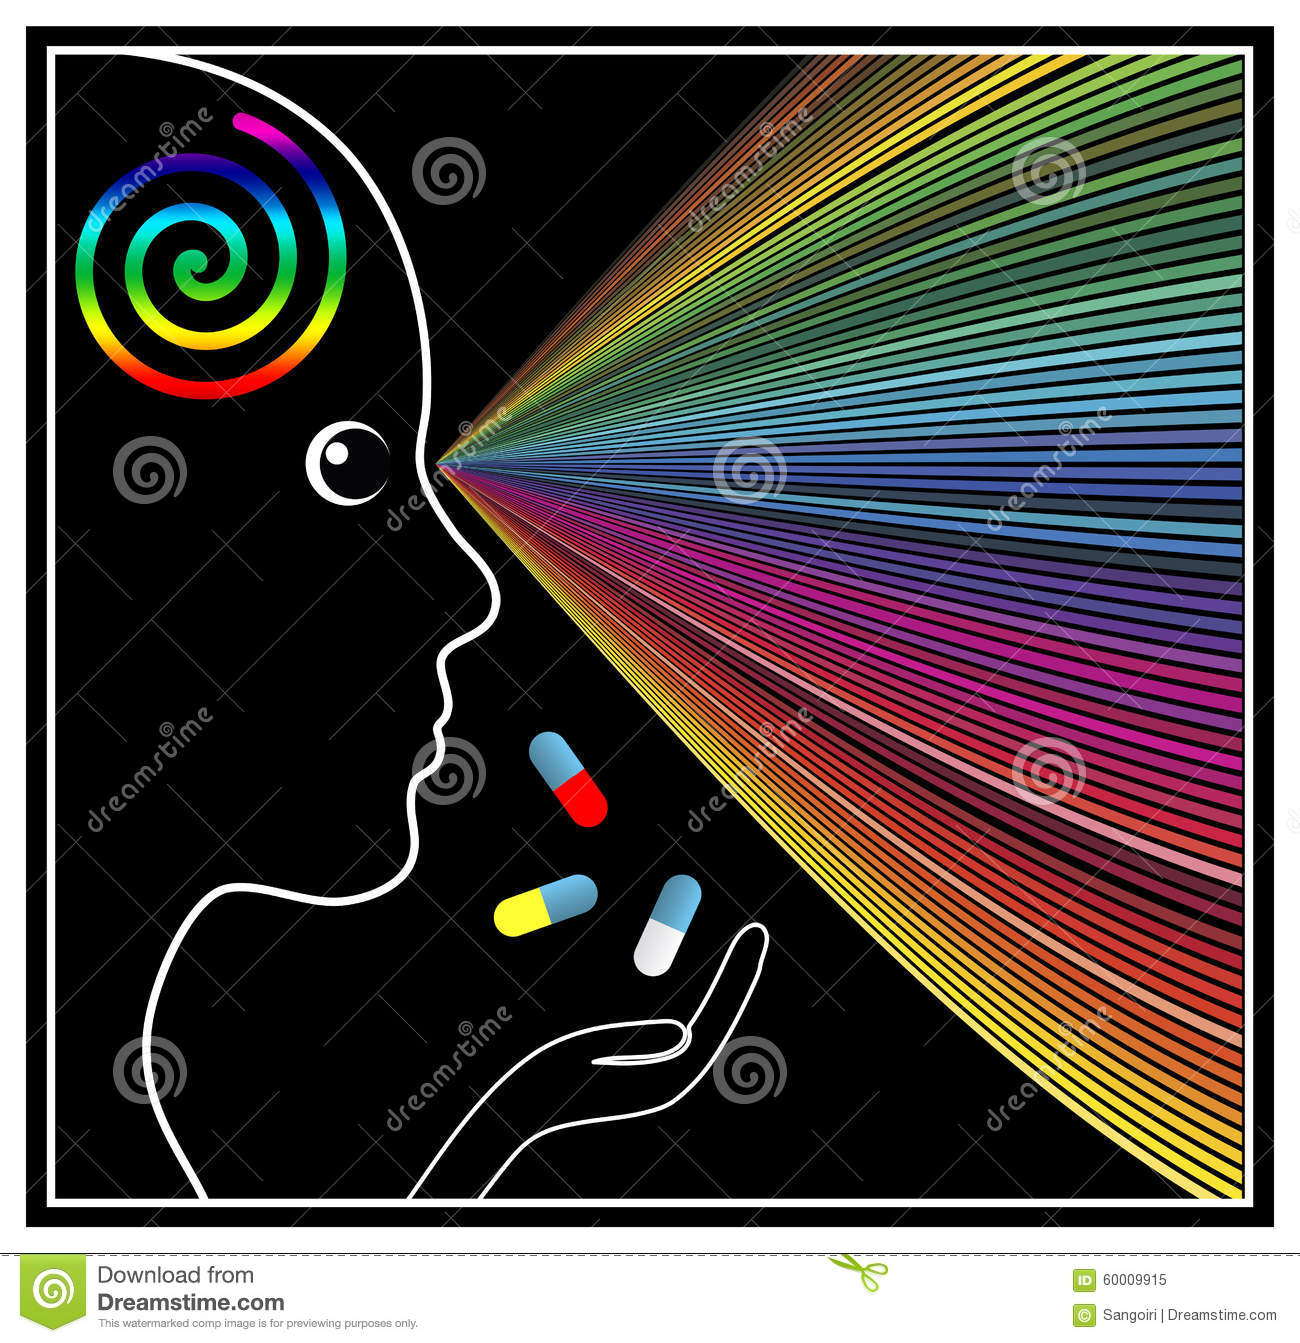 a discussion of psychoactive drugs in altering the workings of the mind - psychoactive drugs can be defined as 'chemicals that influence consciousness or behaviour by altering the brains chemical message system' (schacter et al, 2012) different drugs can affect the brain in different ways either by intensifying or dulling transmissions.